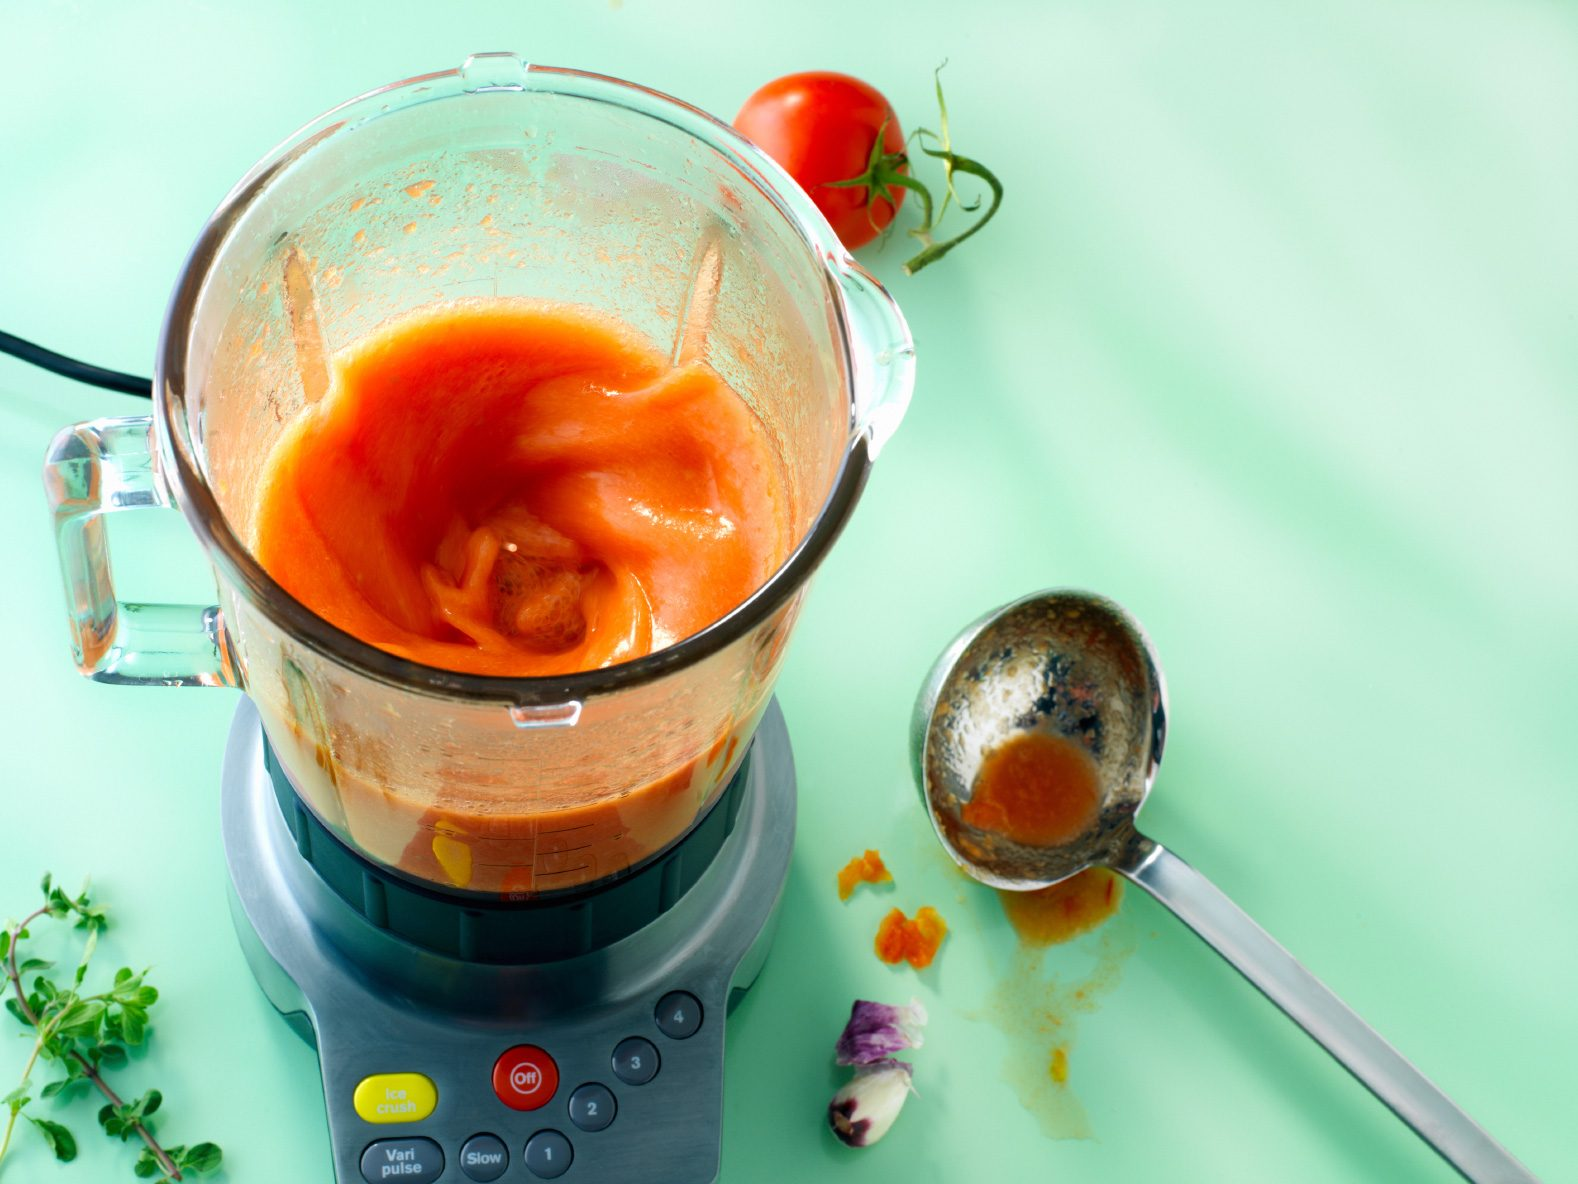 Kitchen-Cleaning Tips: Clean Your Blender